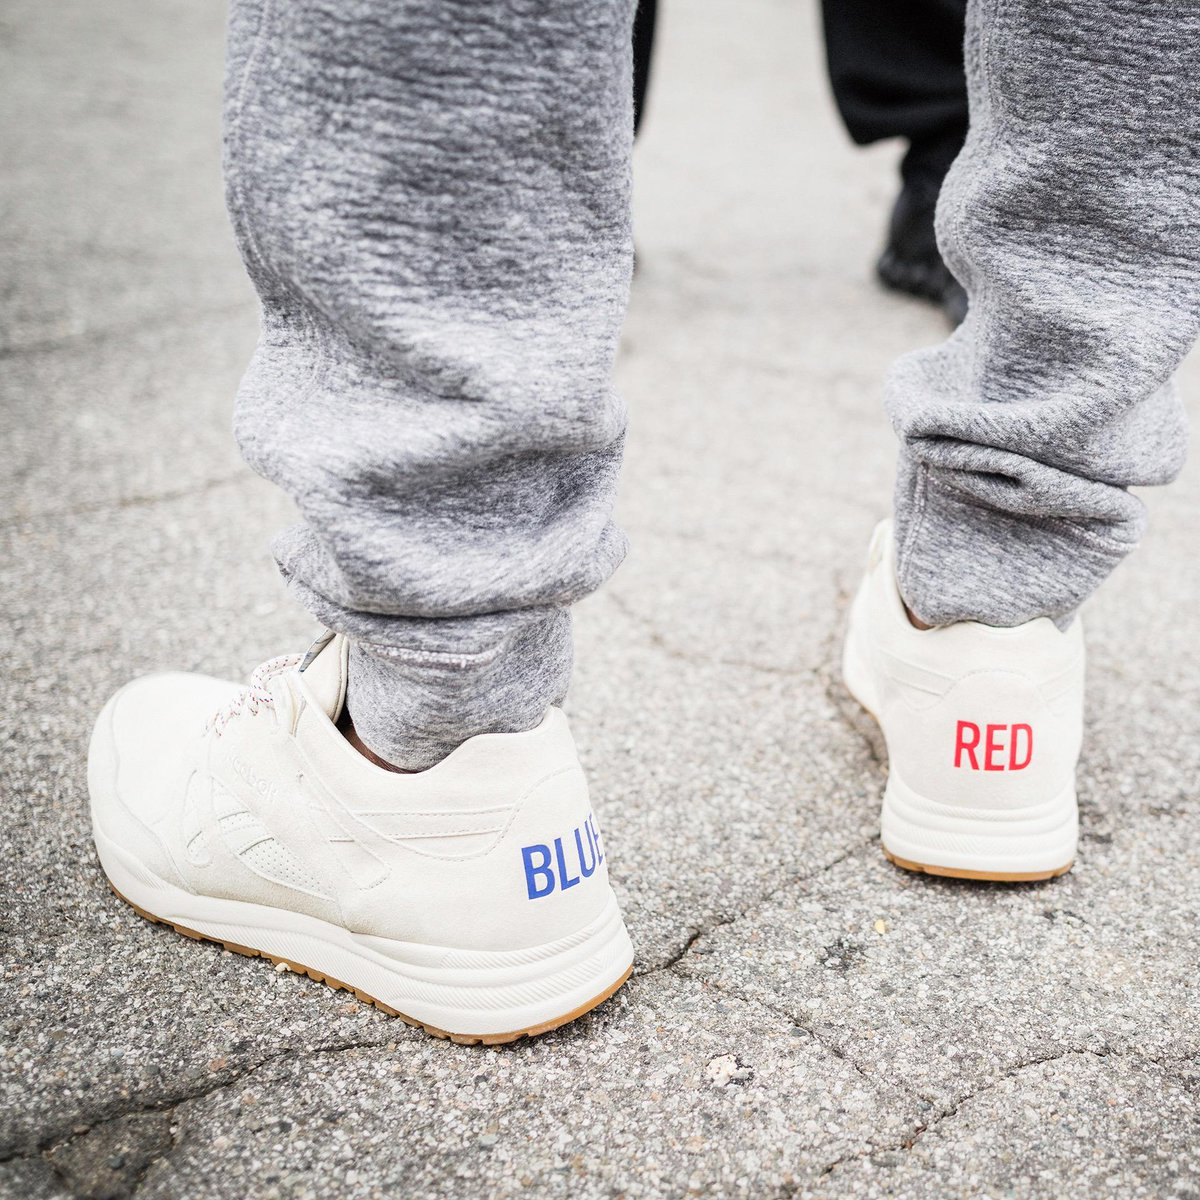 6a49ba5d54ca7 the reebok classics x kendrick lamar ventilator drops tomorrow at hollywood  melrose amp on